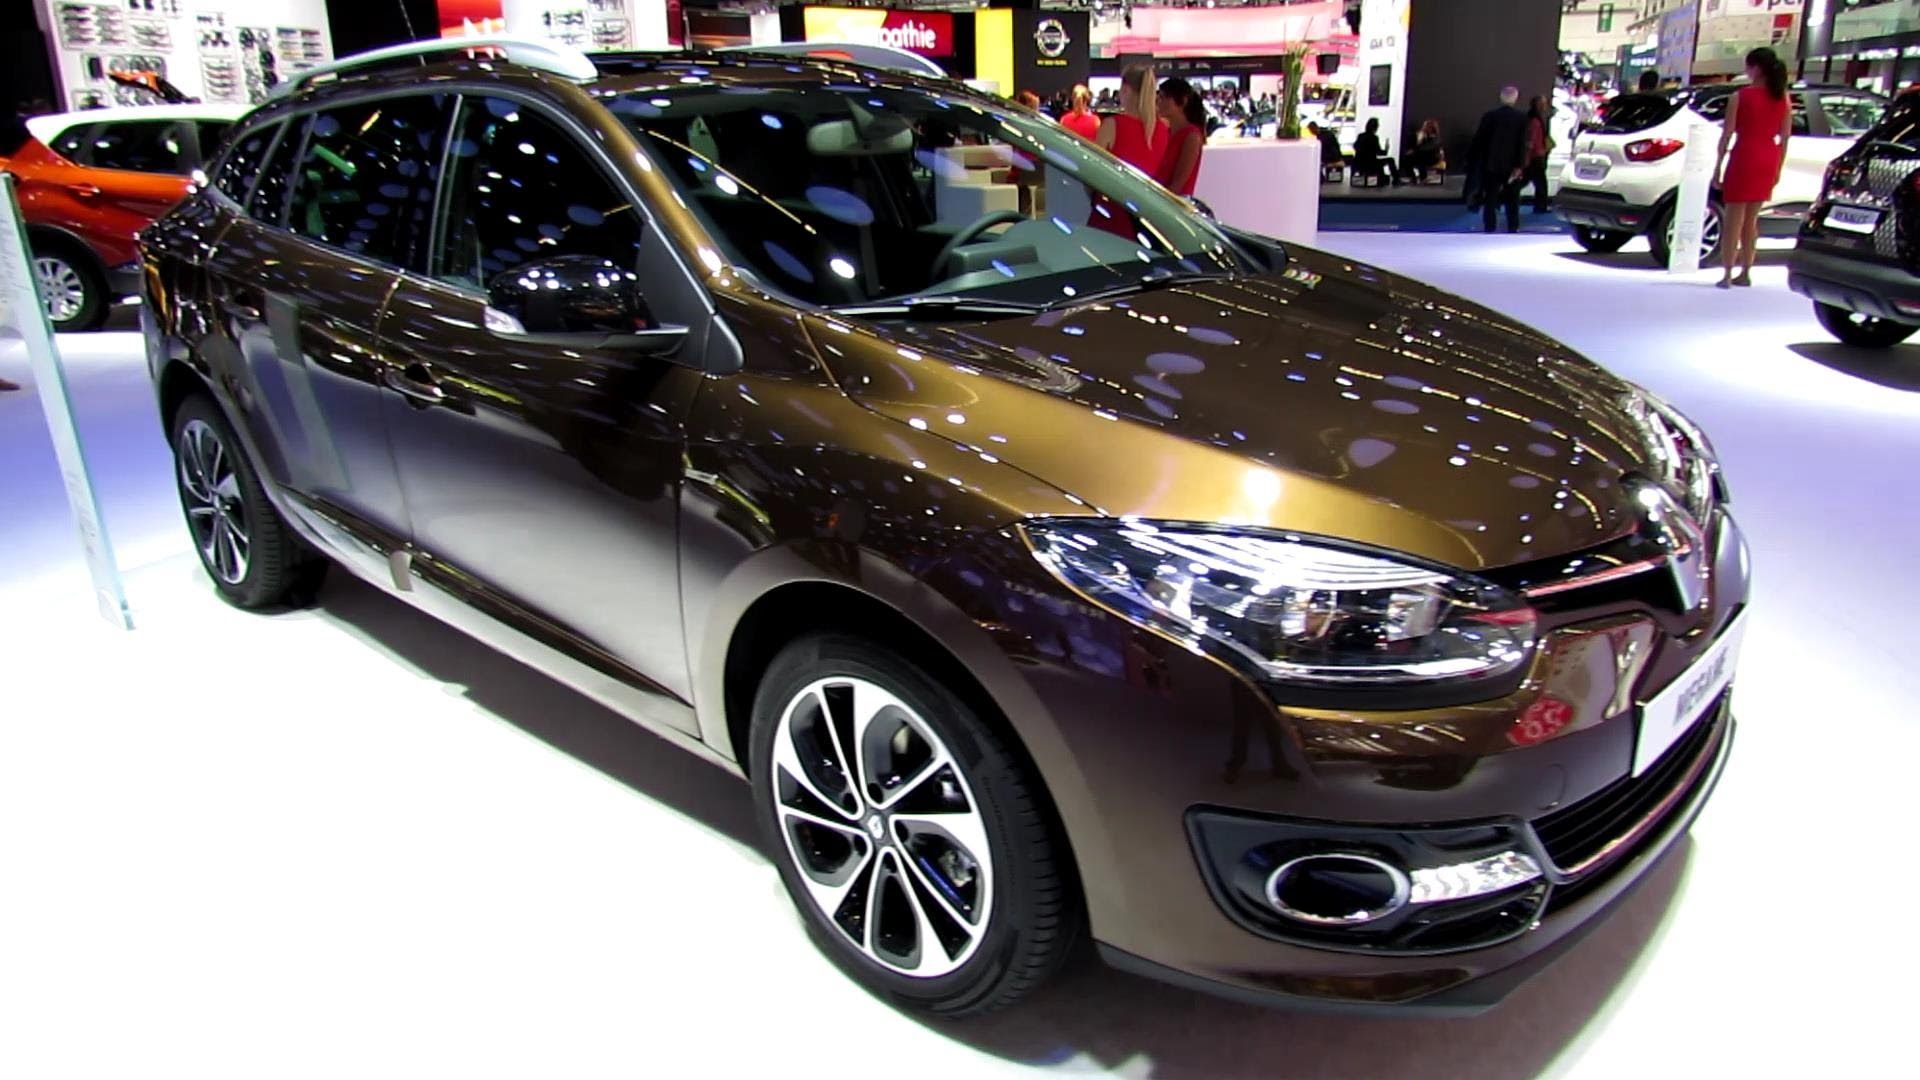 renault megane iii estate 2015 images